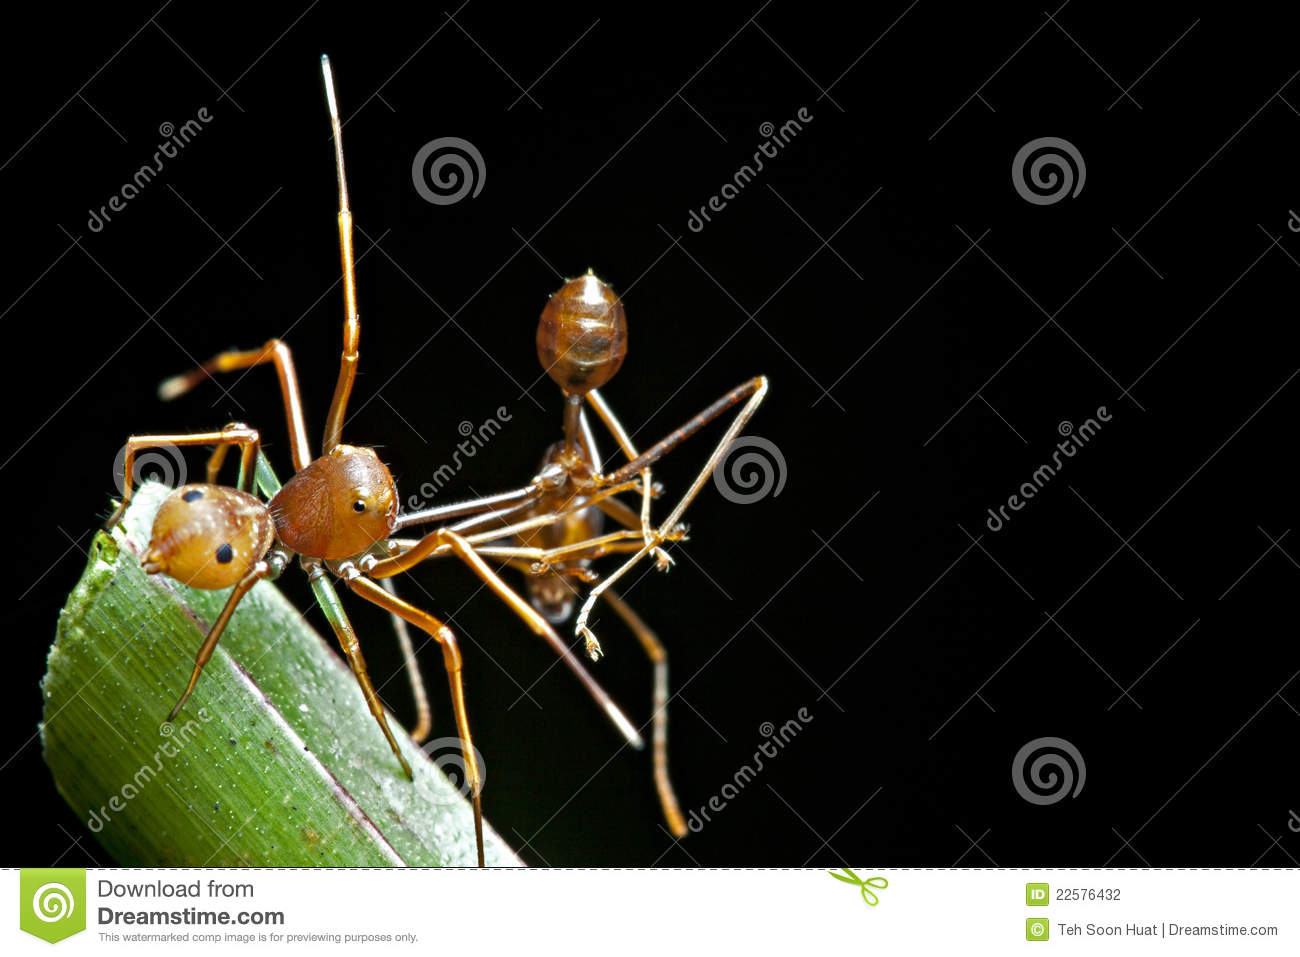 The ant mimic spider with its food